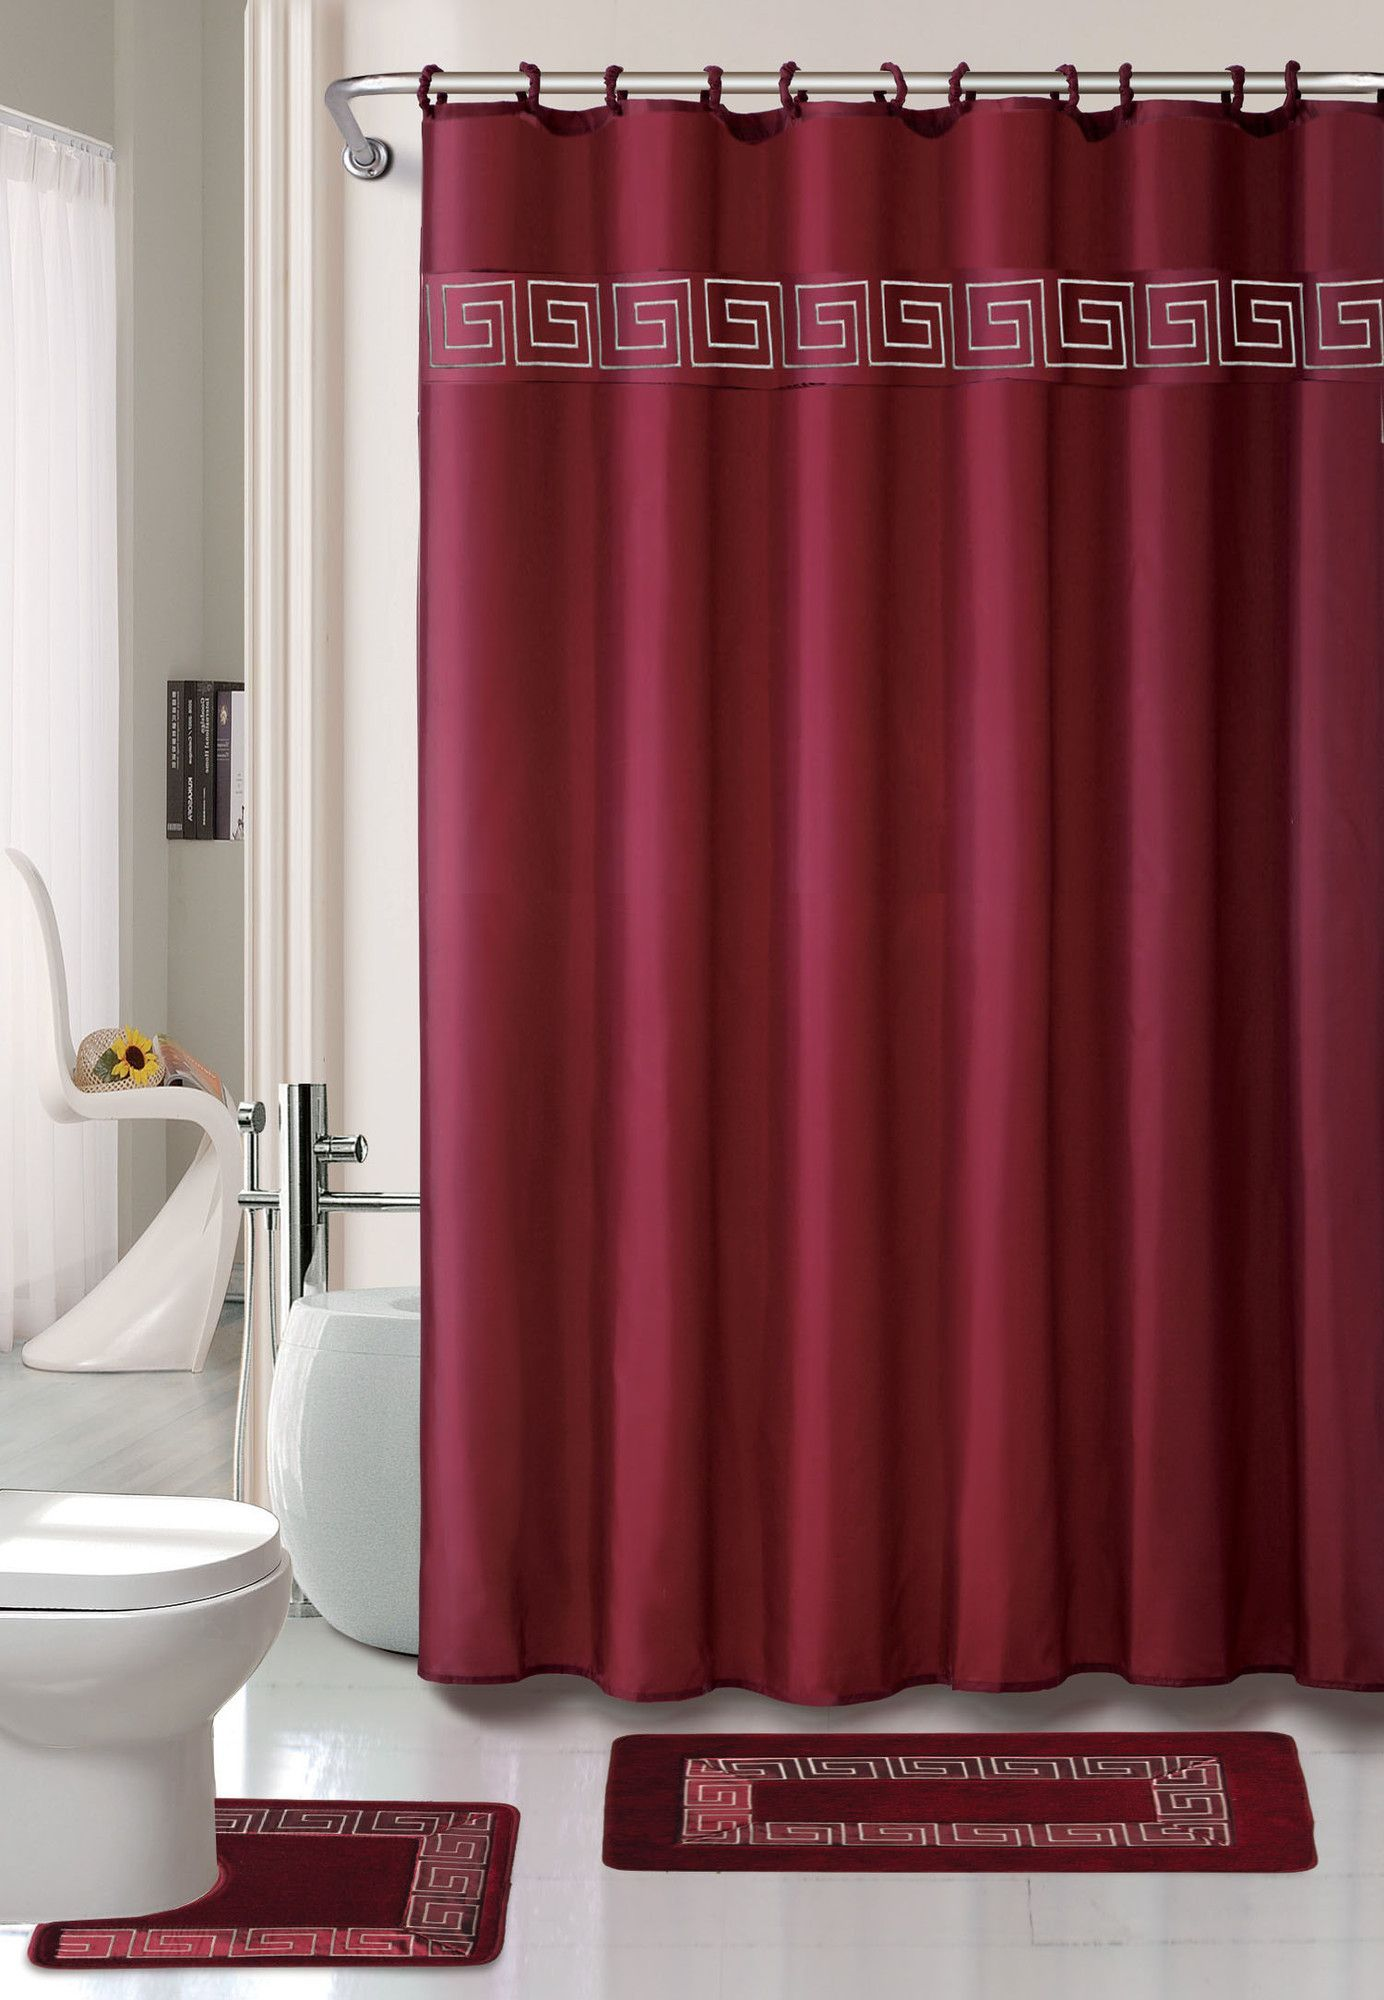 Apt 9 Shower Curtain Red And Black Shower Curtain This Would Work In My Zebra Themed